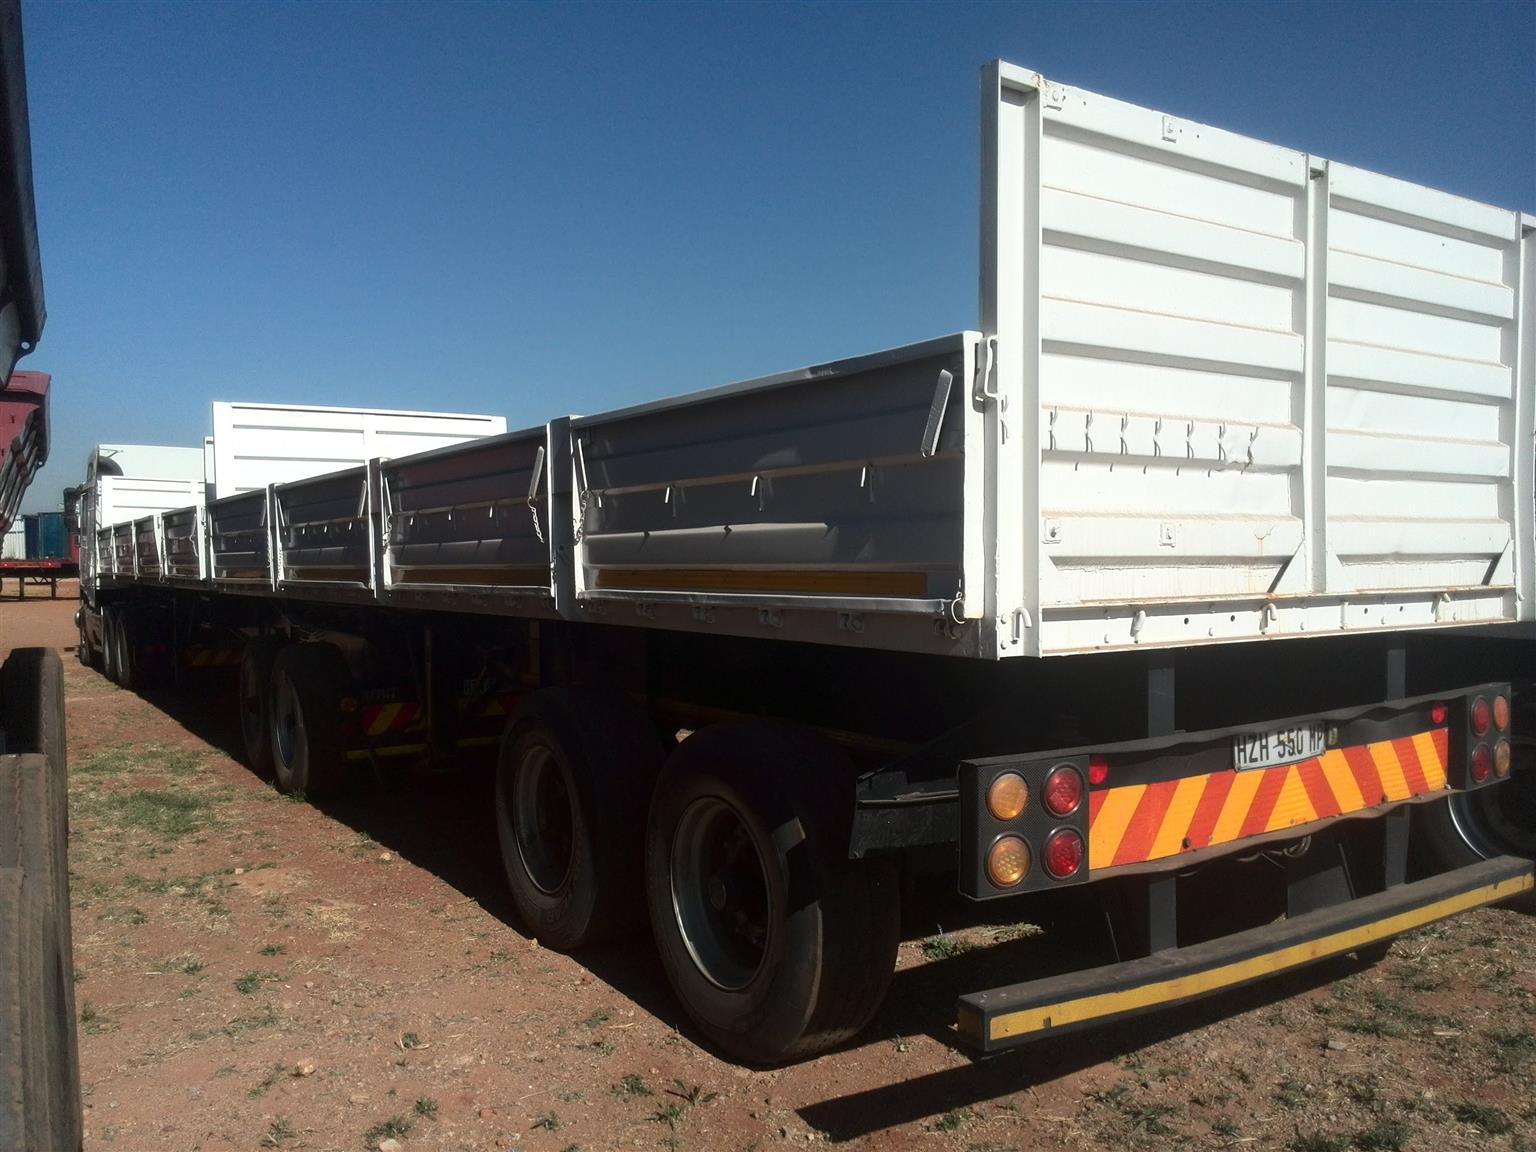 2008 - FREIGHT LINERS Posted by Lemeshen Pillay